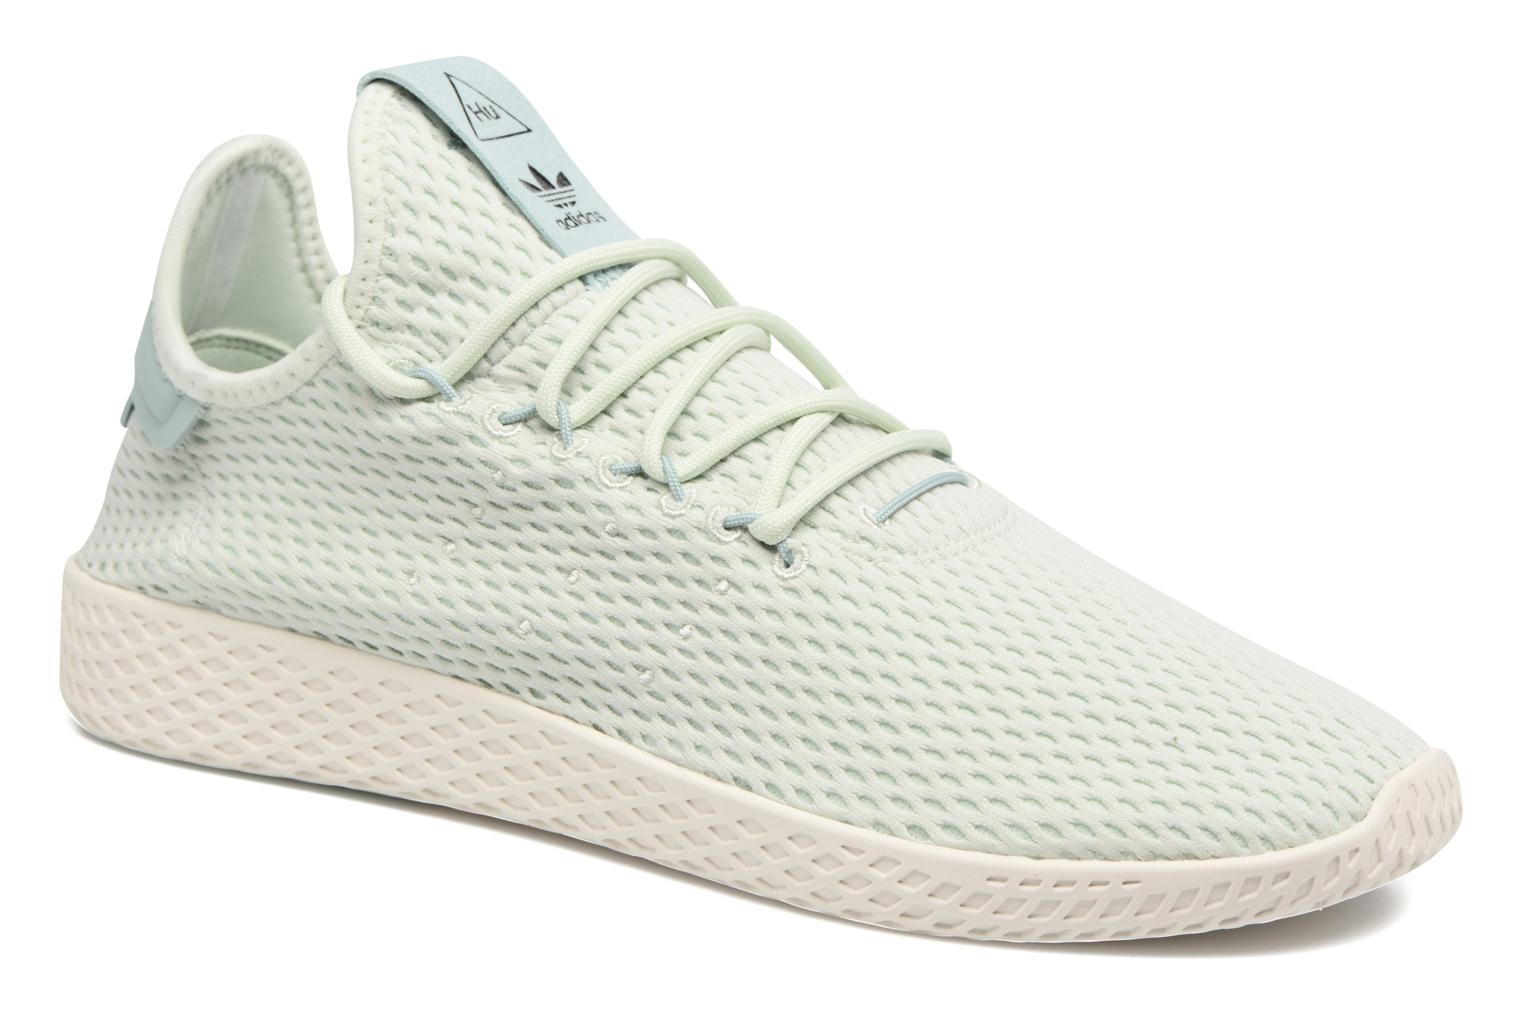 Baskets Adidas Originals Pharrell Williams Tennis Hu Bleu vue détail/paire